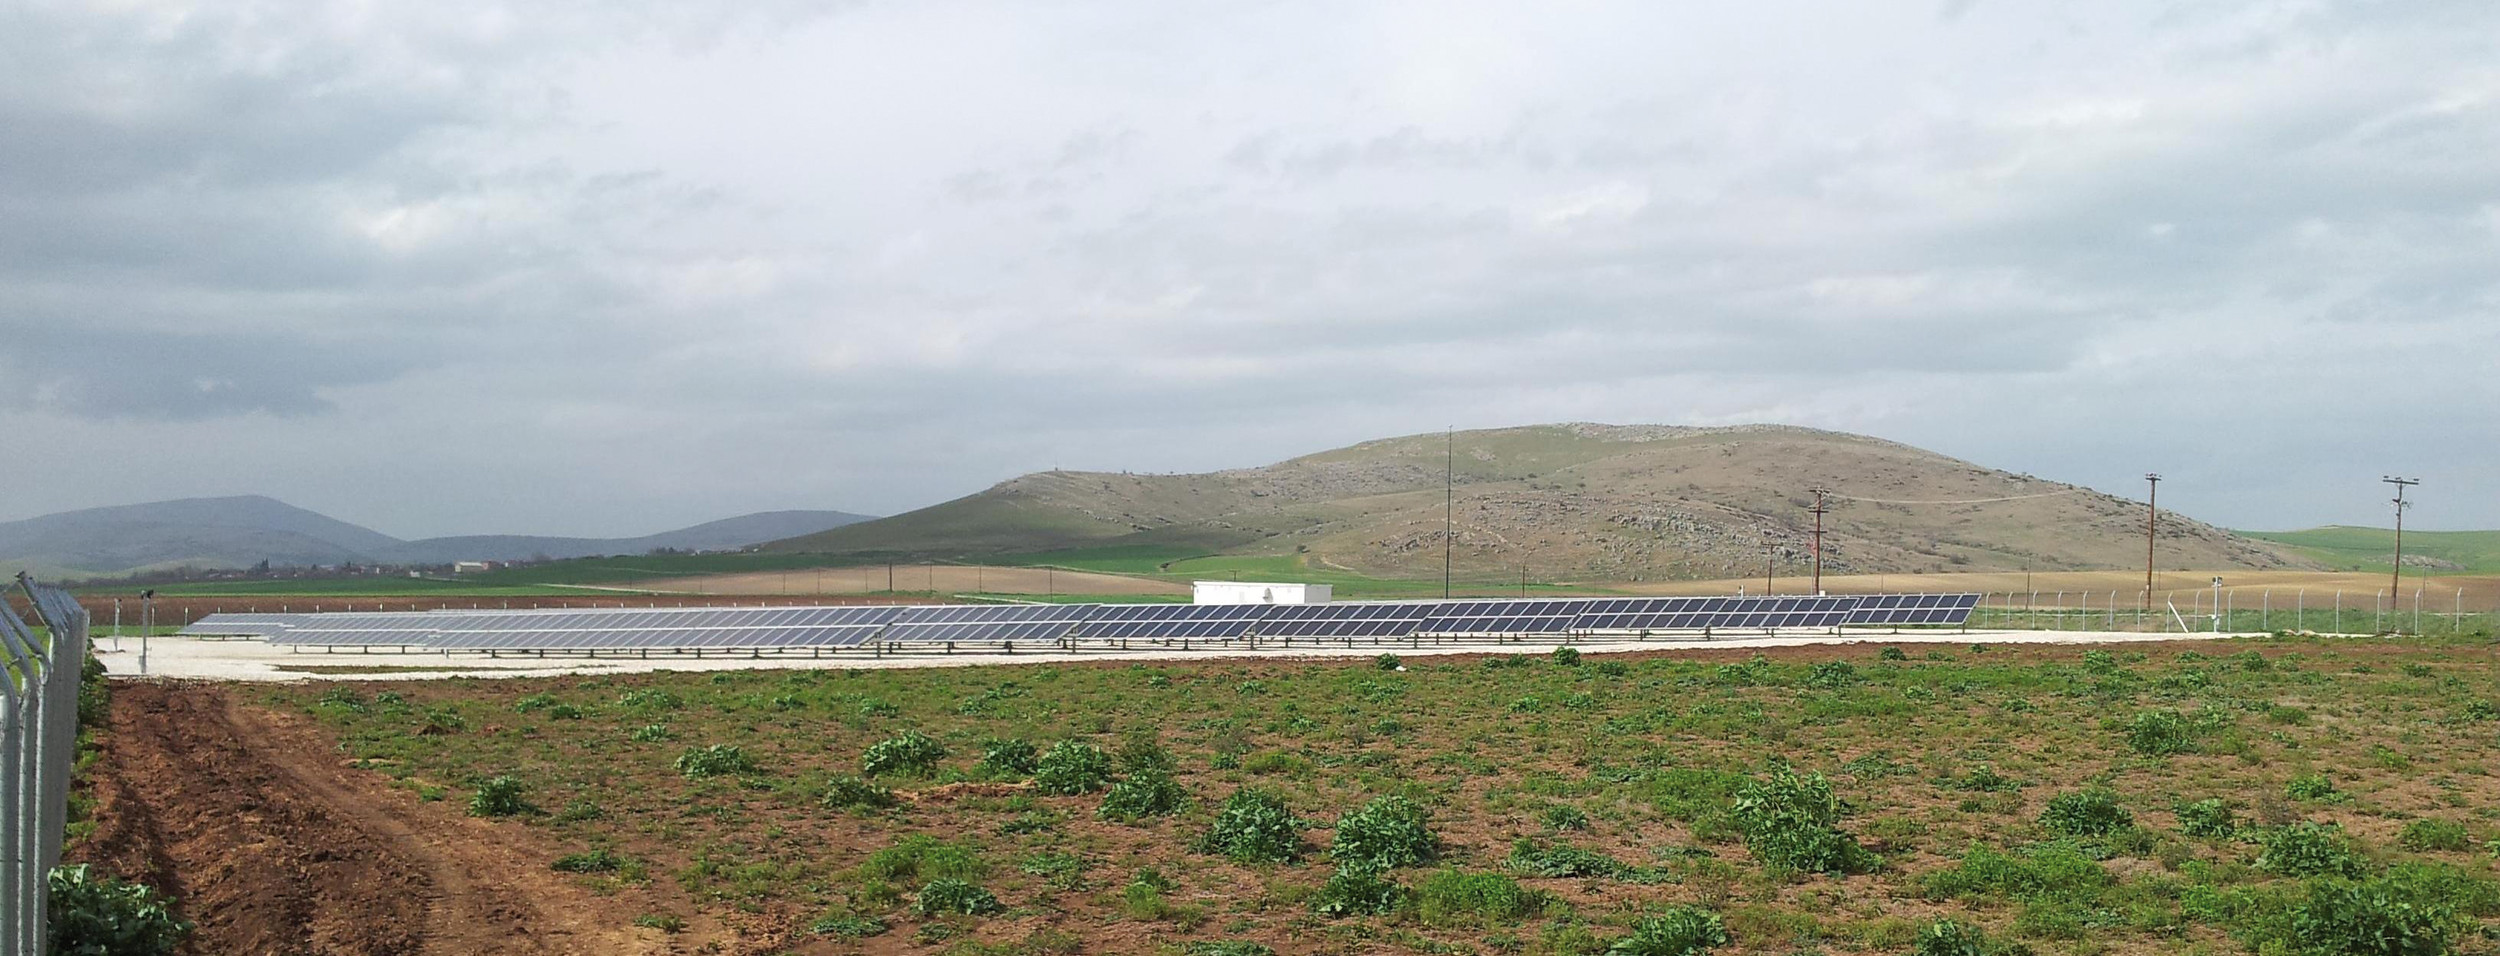 A solar farm in Thessaly, Greece. Source: Fronius.